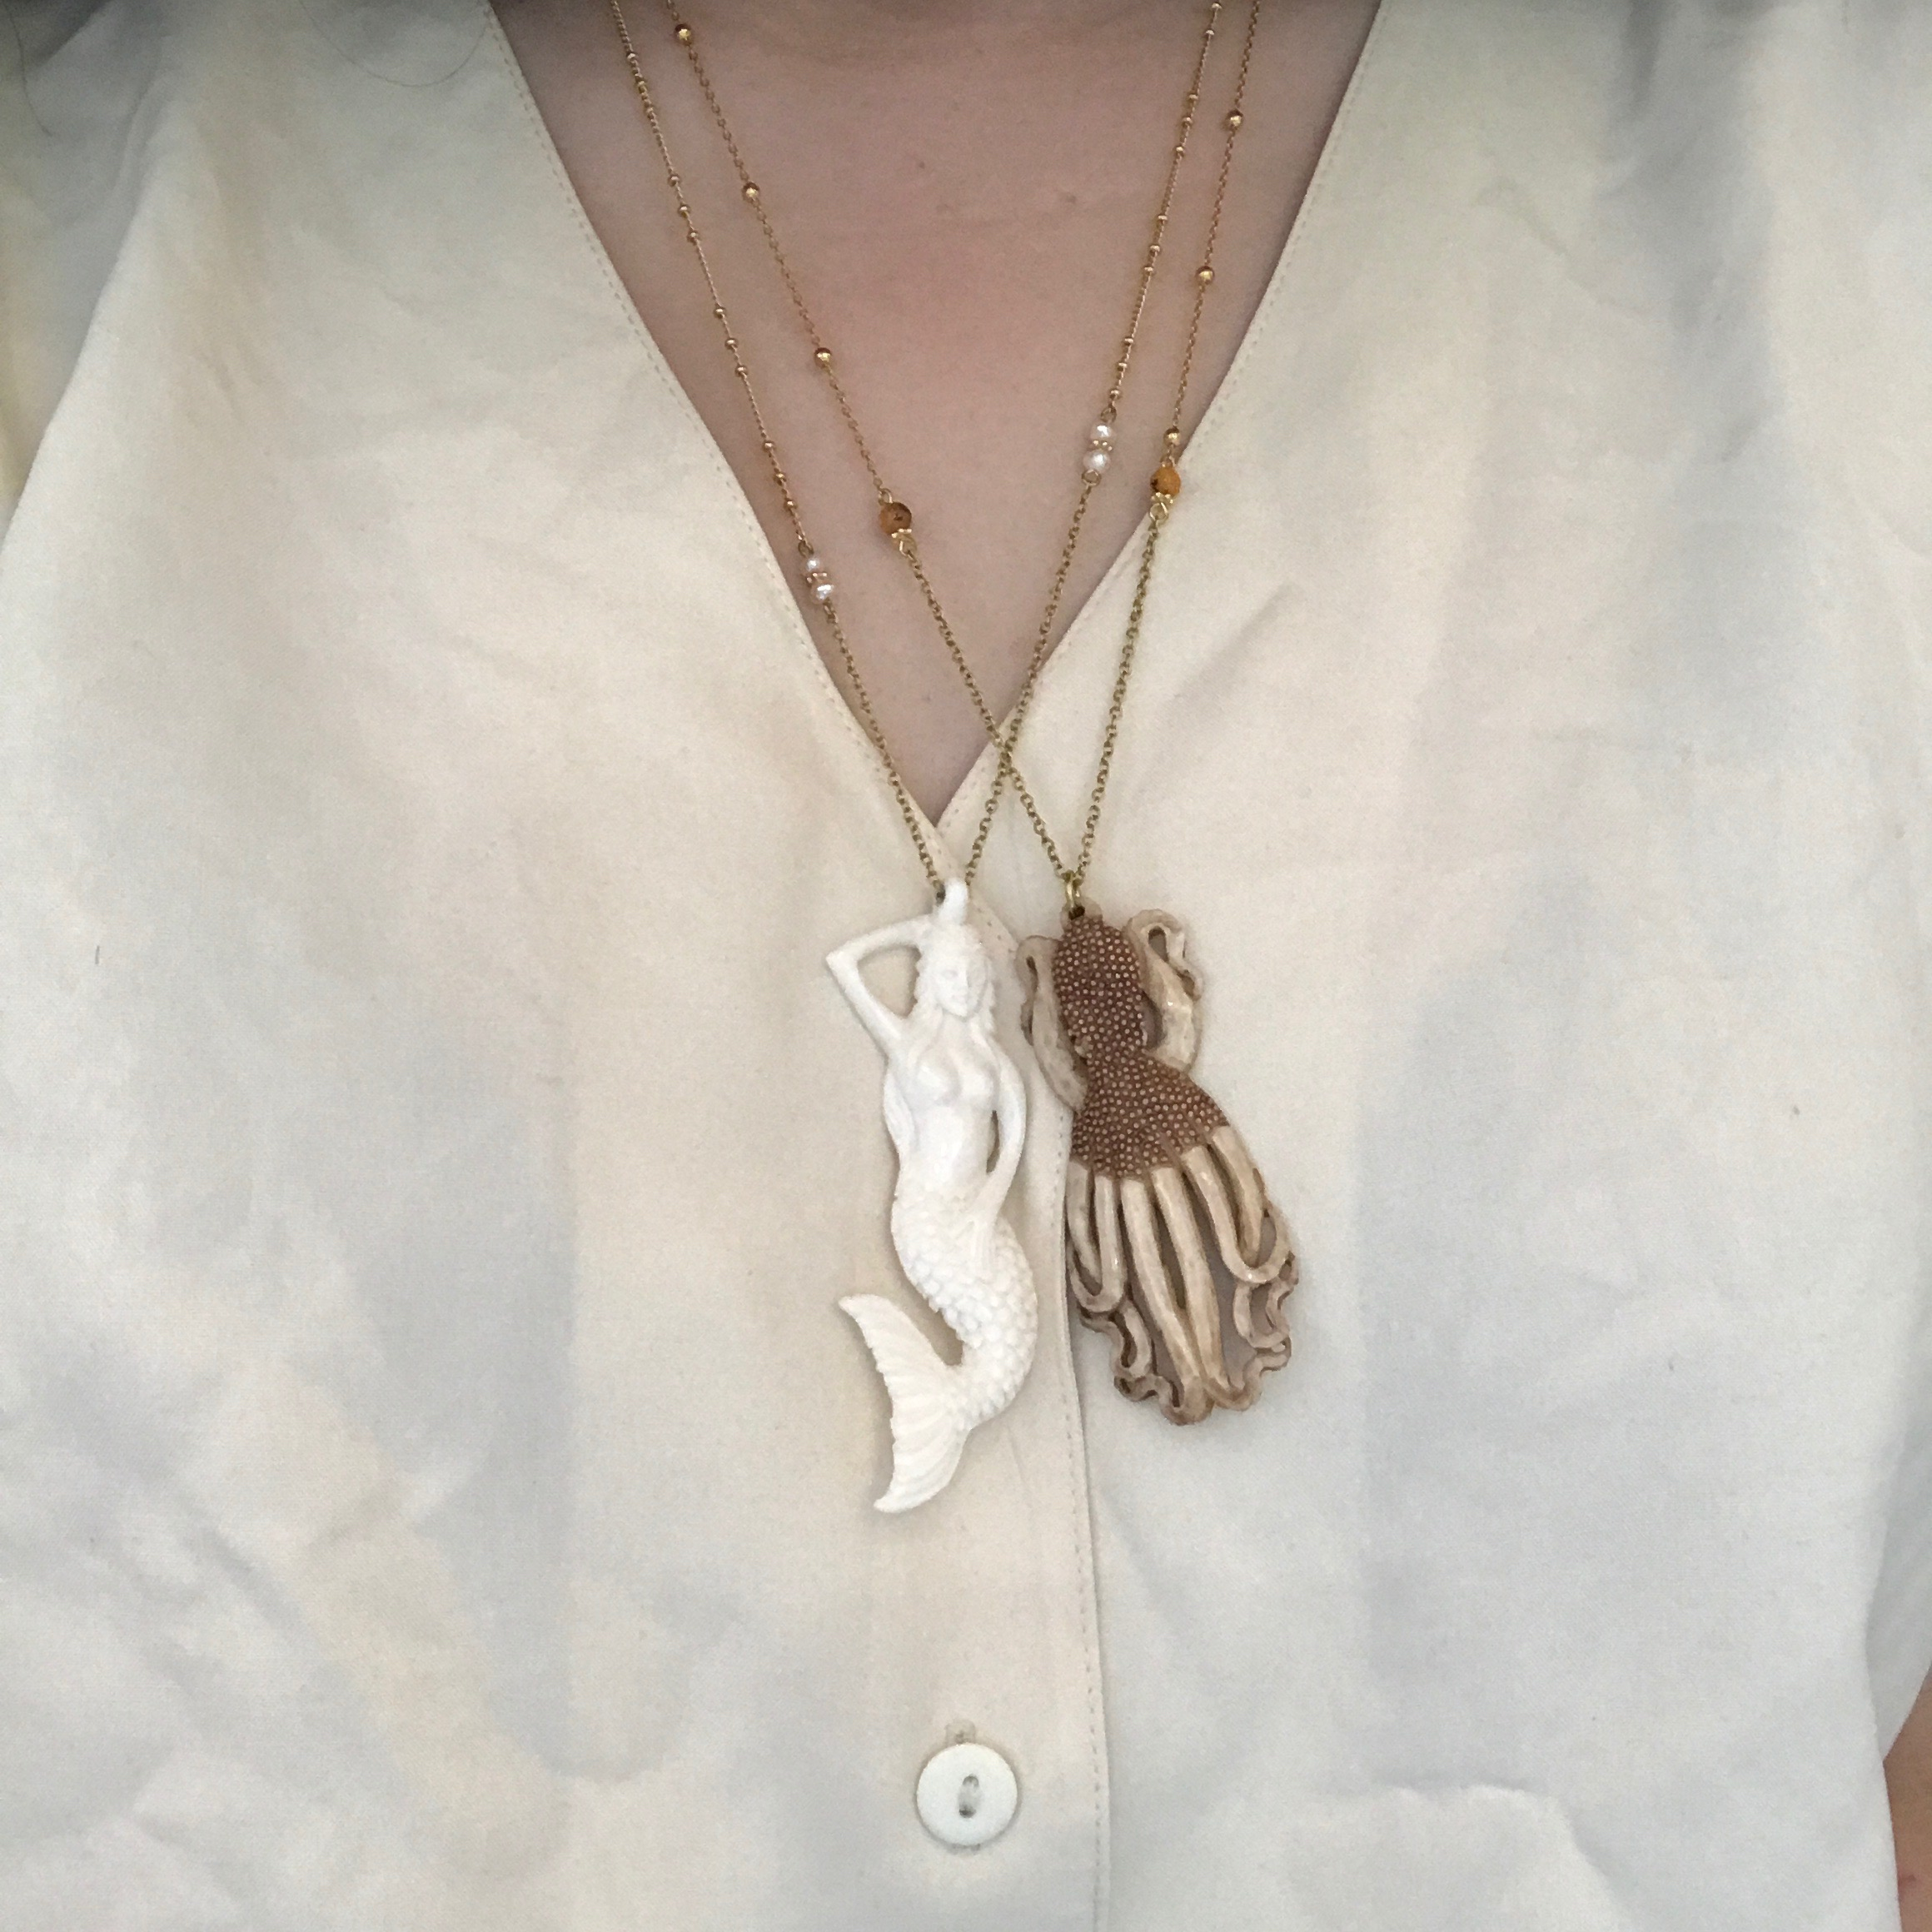 Mermaid and octopus made of bone on gold-plated necklace by Petra Reijrink Jewelry